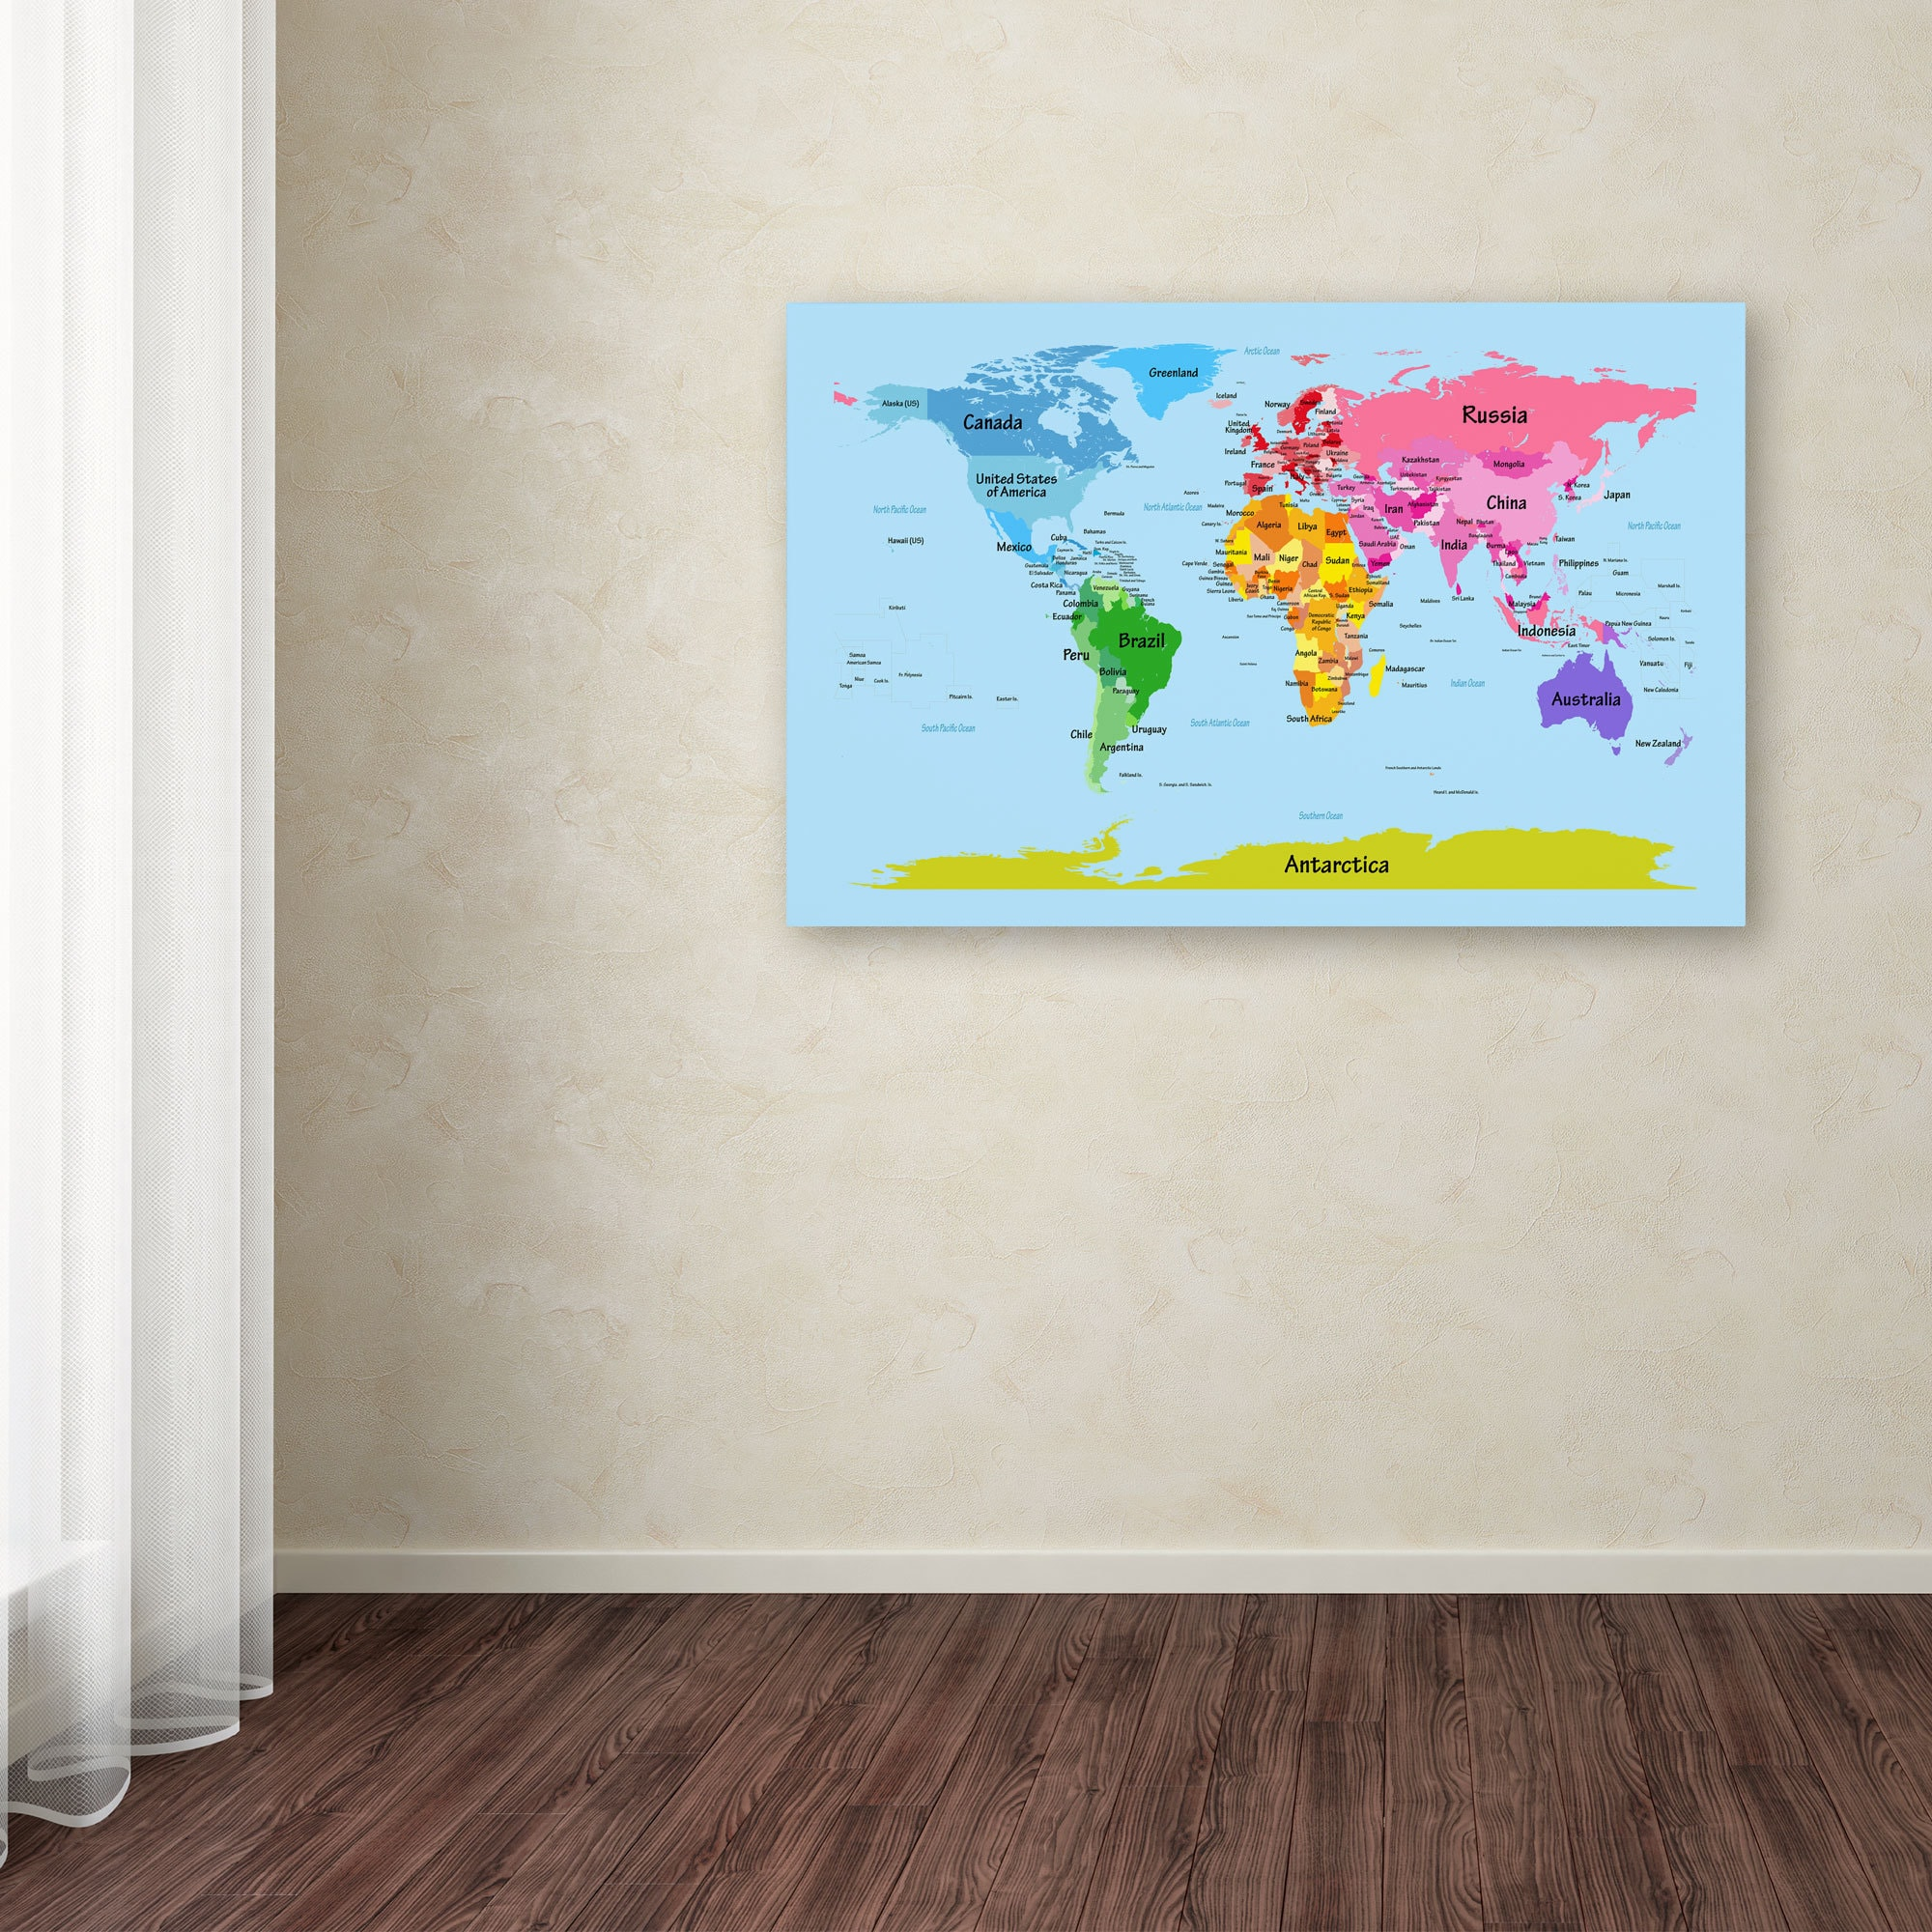 Shop michael tompsett world map for kids canvas art on sale shop michael tompsett world map for kids canvas art on sale free shipping today overstock 9188793 gumiabroncs Image collections